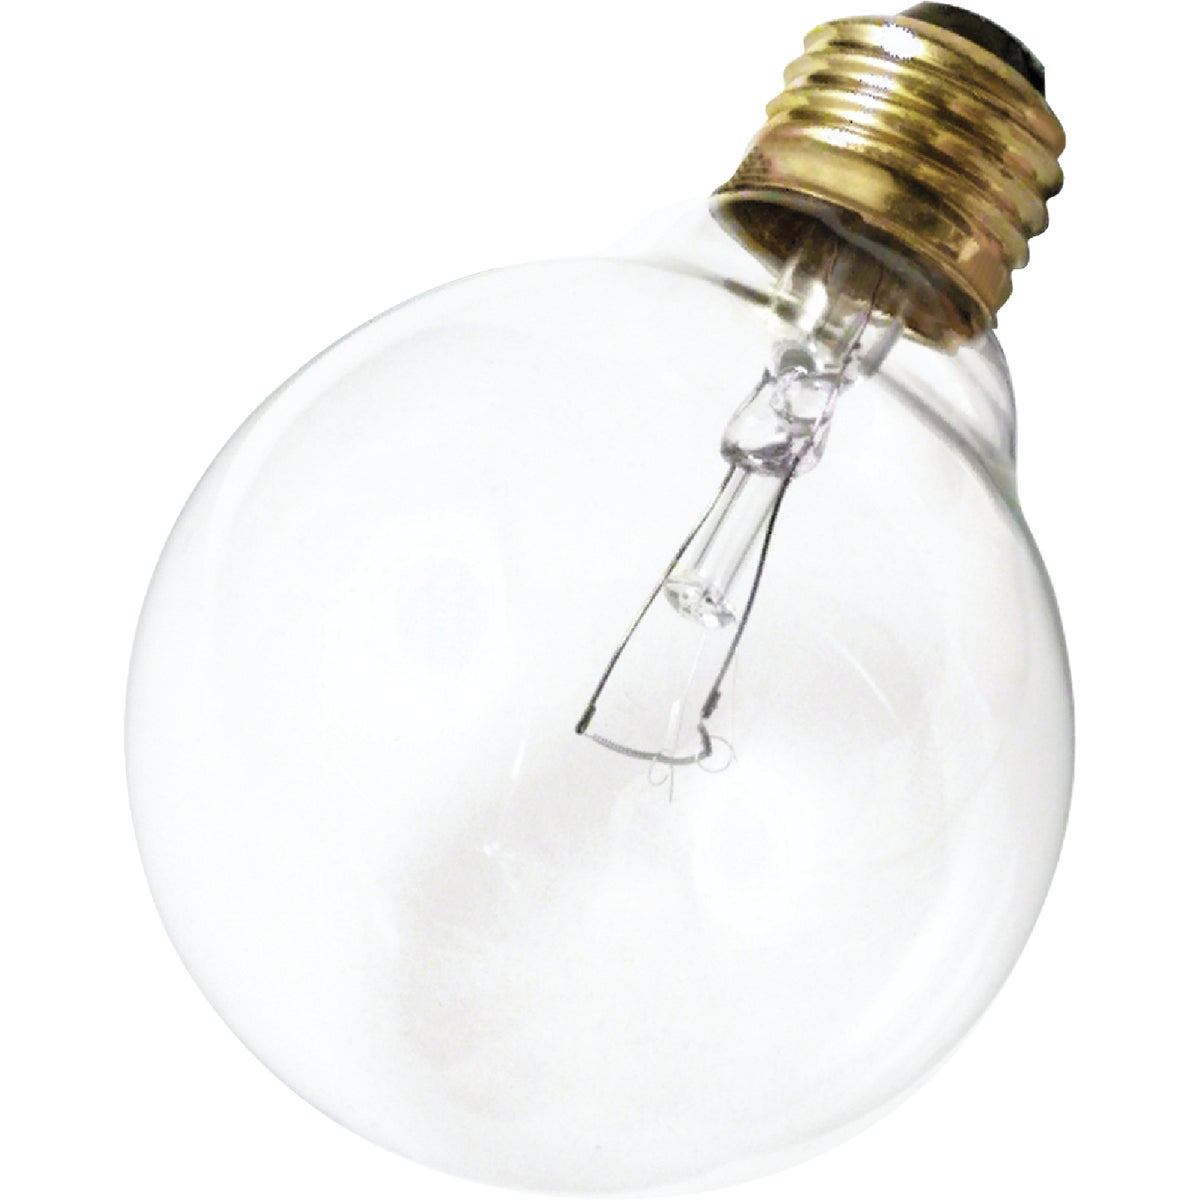 "25W CLR 3-1/8""GLOBE BULB - 12983 25G25 by G E Lighting"